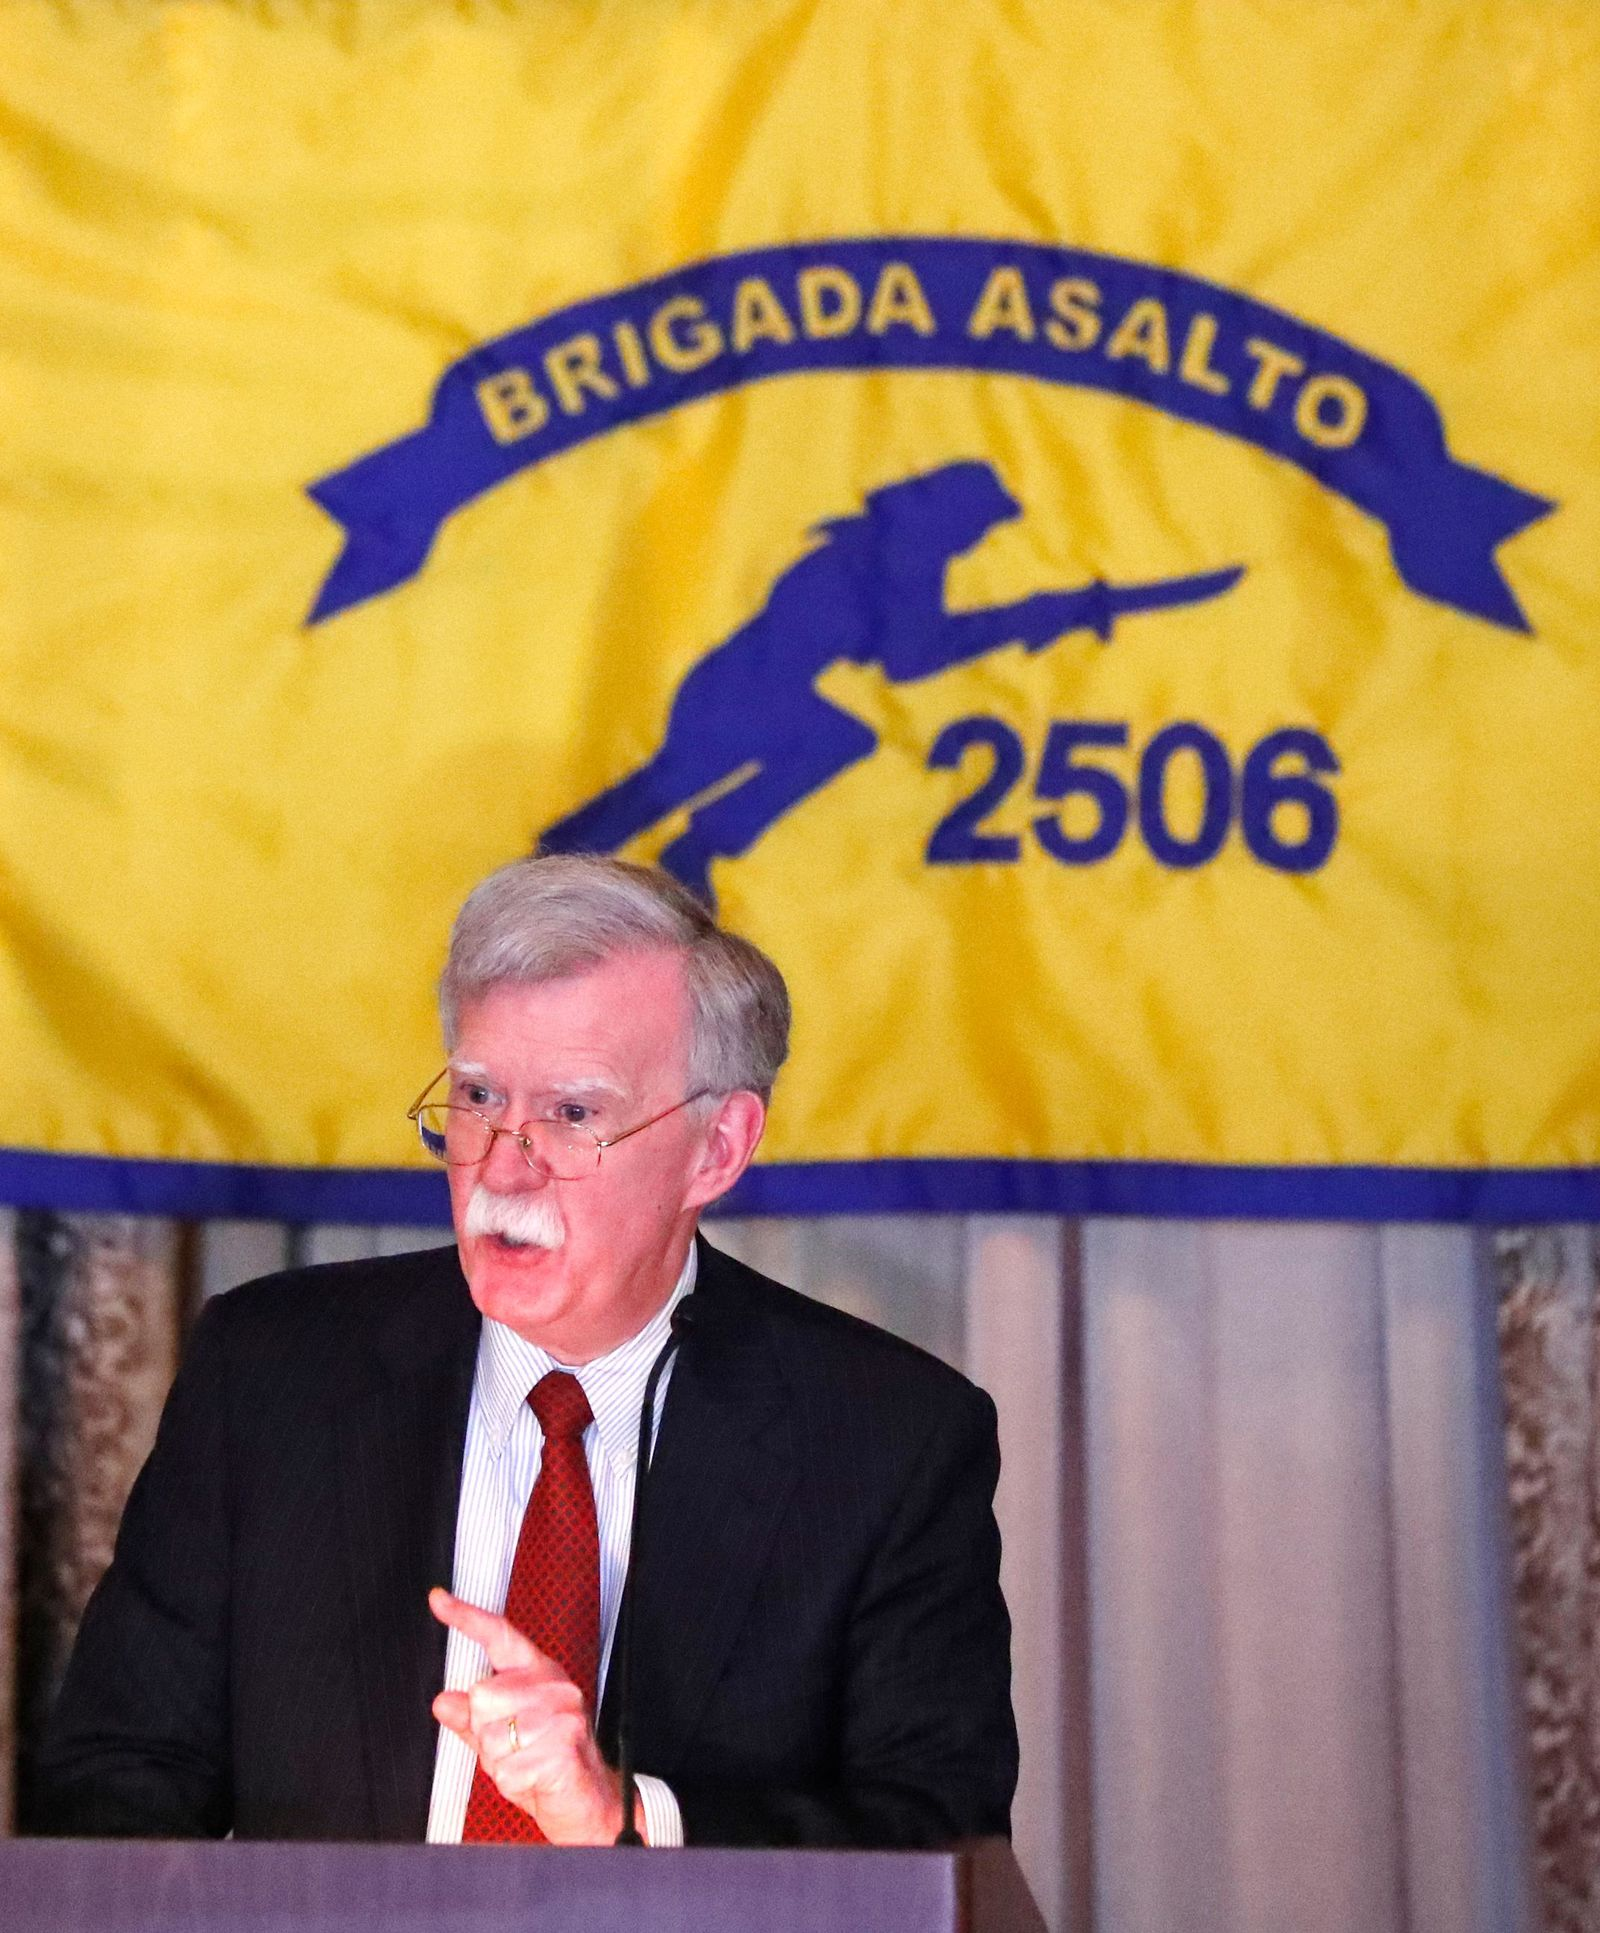 National security adviser John Bolton gestures while discussing administration new policy during a speech, Wednesday, April 17, 2019, in Coral Gables, Fla. (AP Photo/Wilfredo Lee)